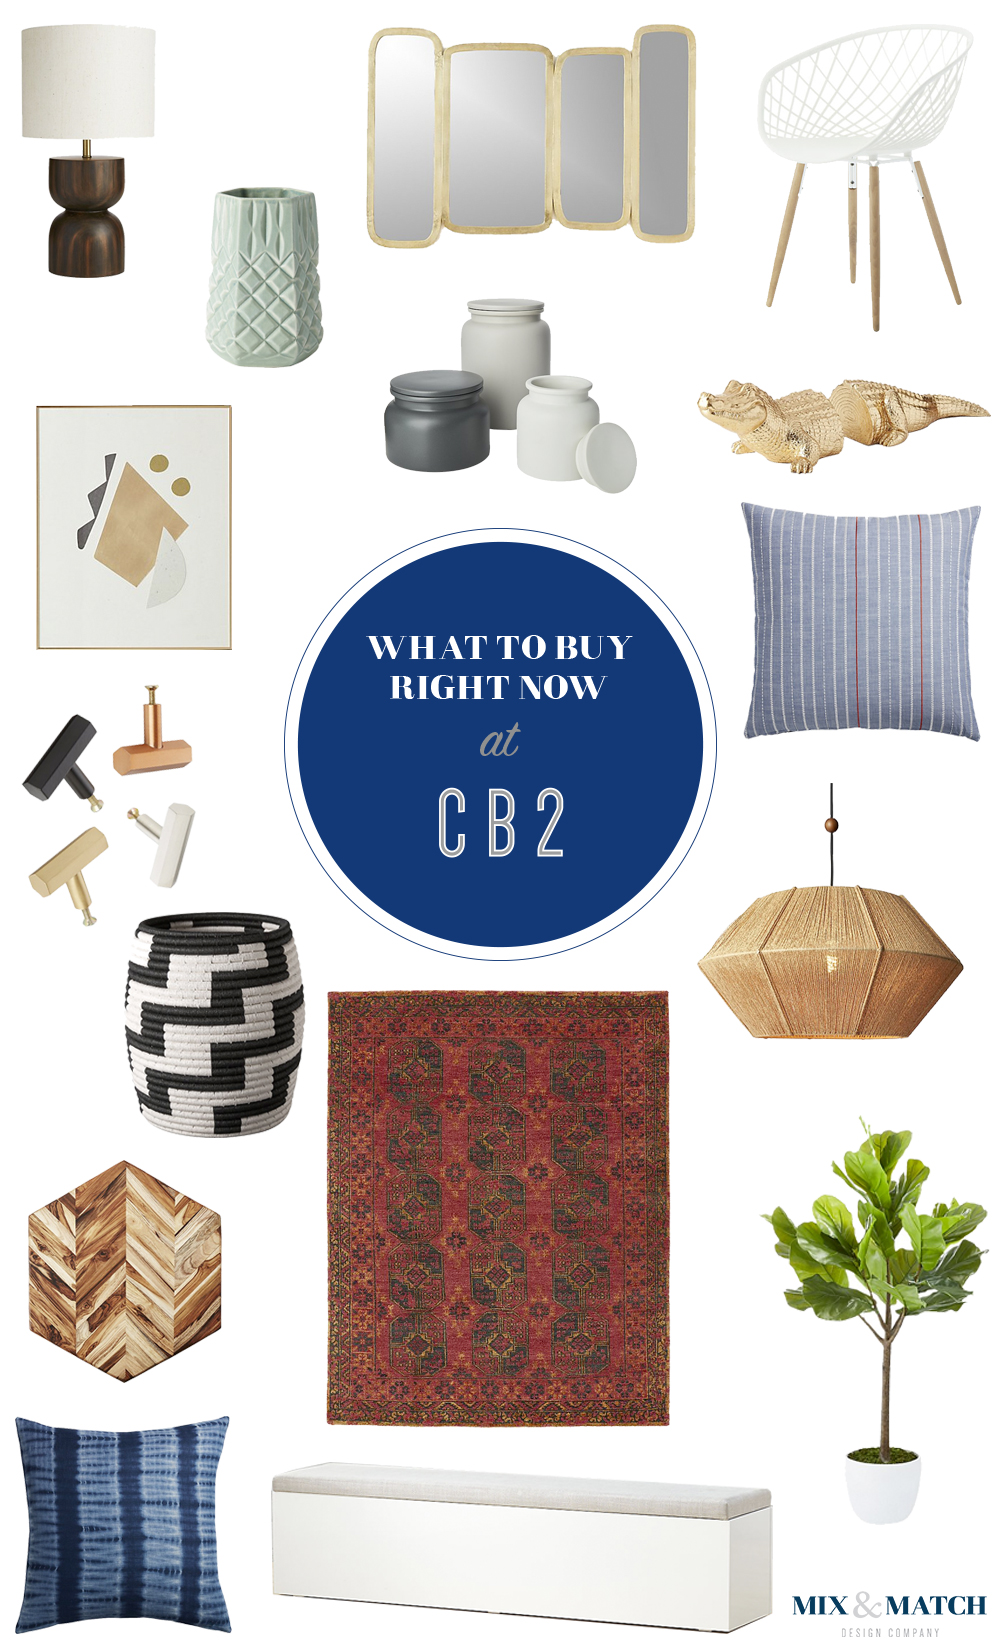 What to buy from CB2's current collection. Click through for the links to these products. // Modern furniture, modern home decor, affordable modern decor.